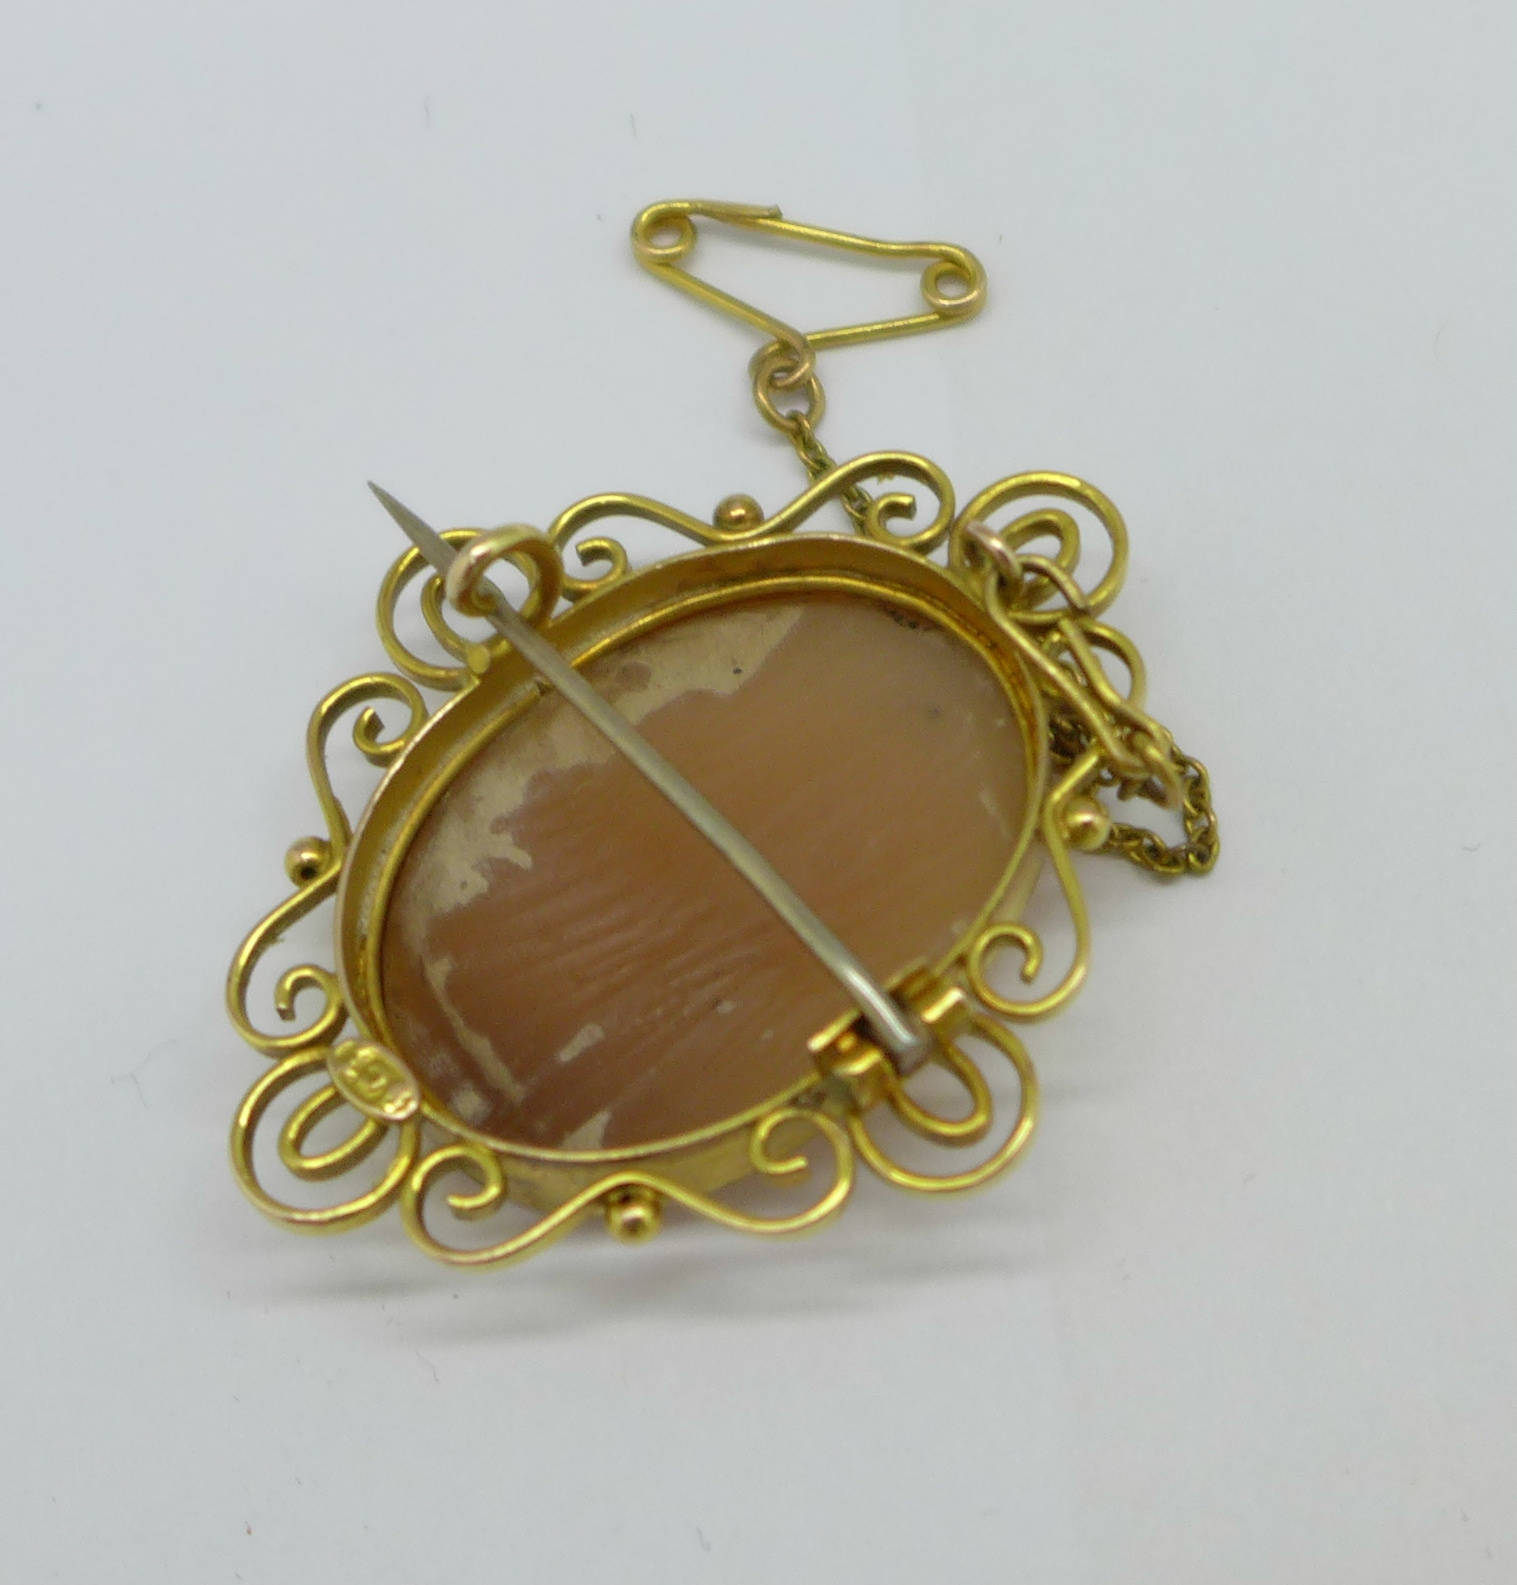 A 9ct gold cameo brooch, 5.6g - Image 2 of 2